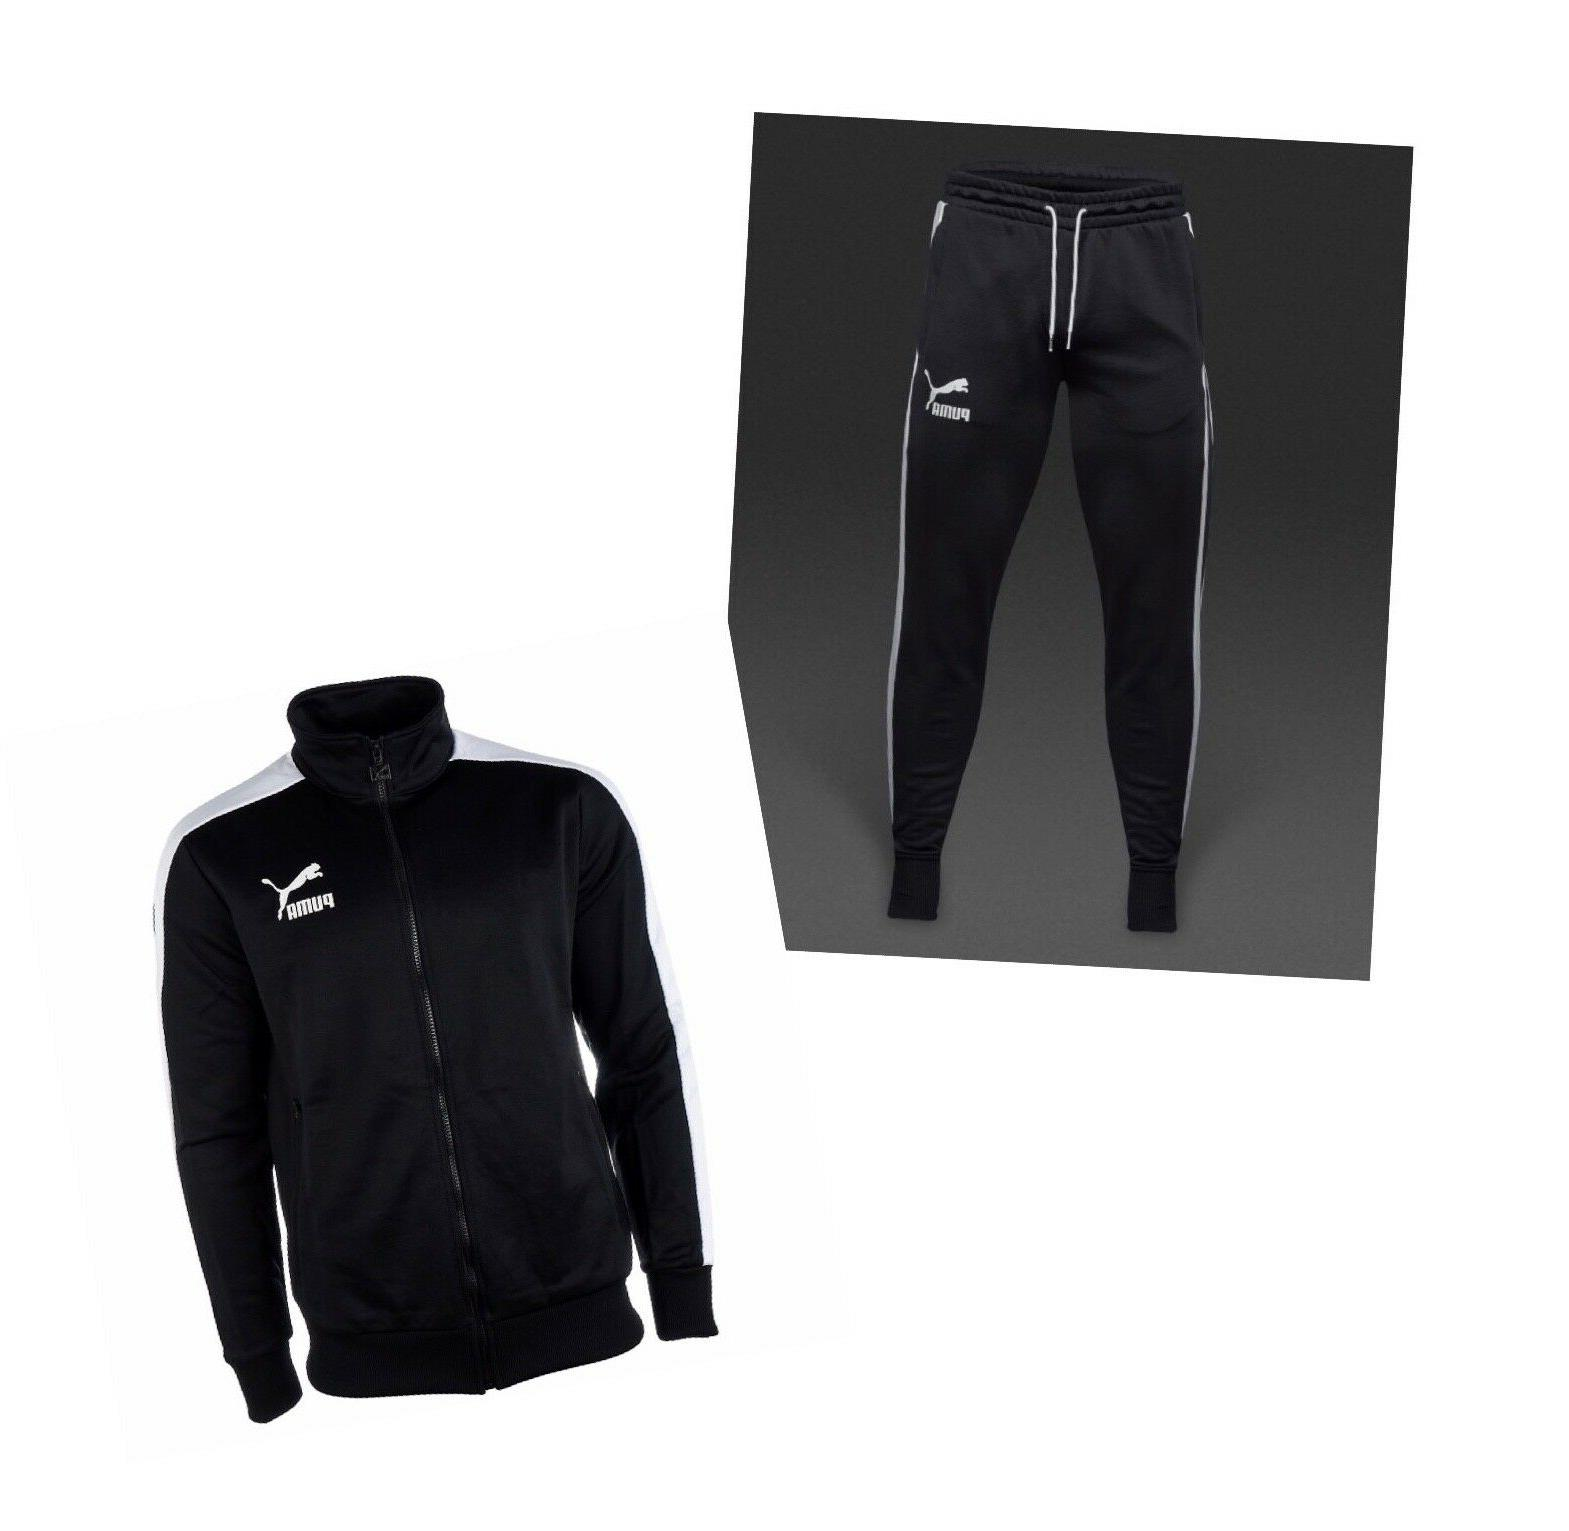 nwt mens size xl archive t7 tracksuit